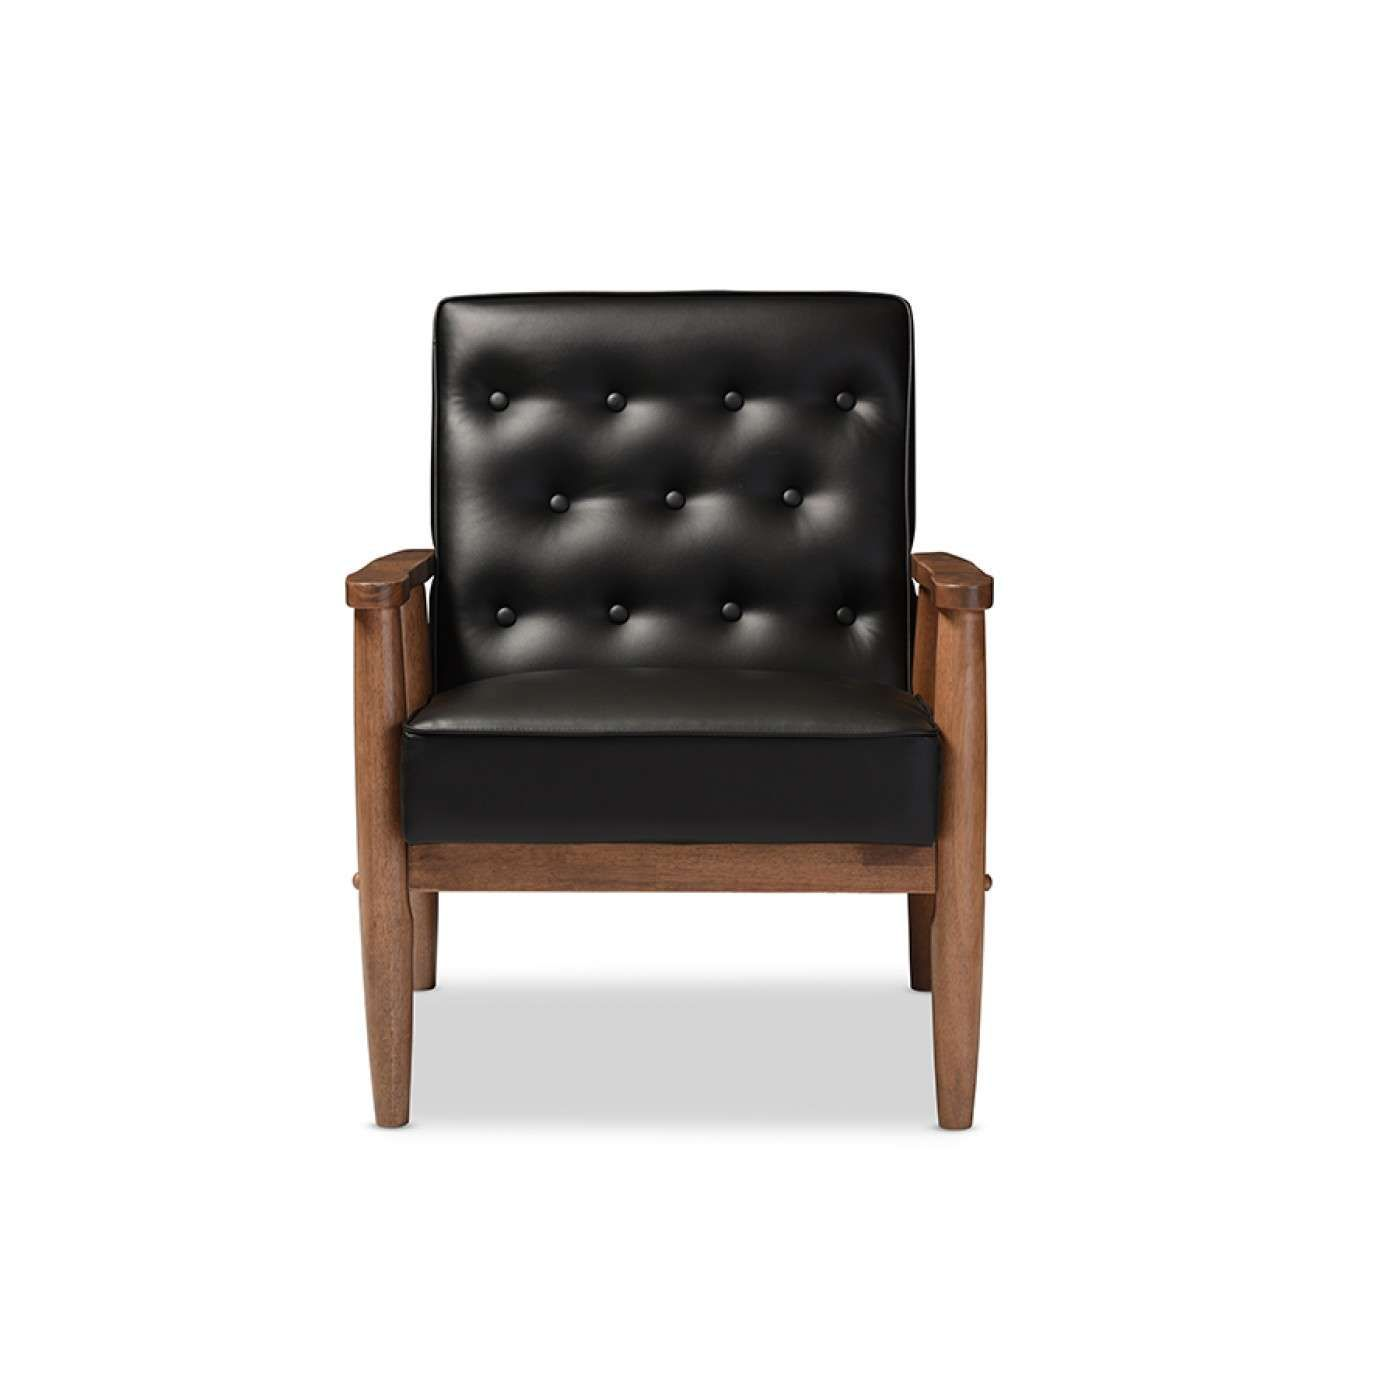 Baxton Studio Sorrento Modern Black Faux Leather Wooden Lounge